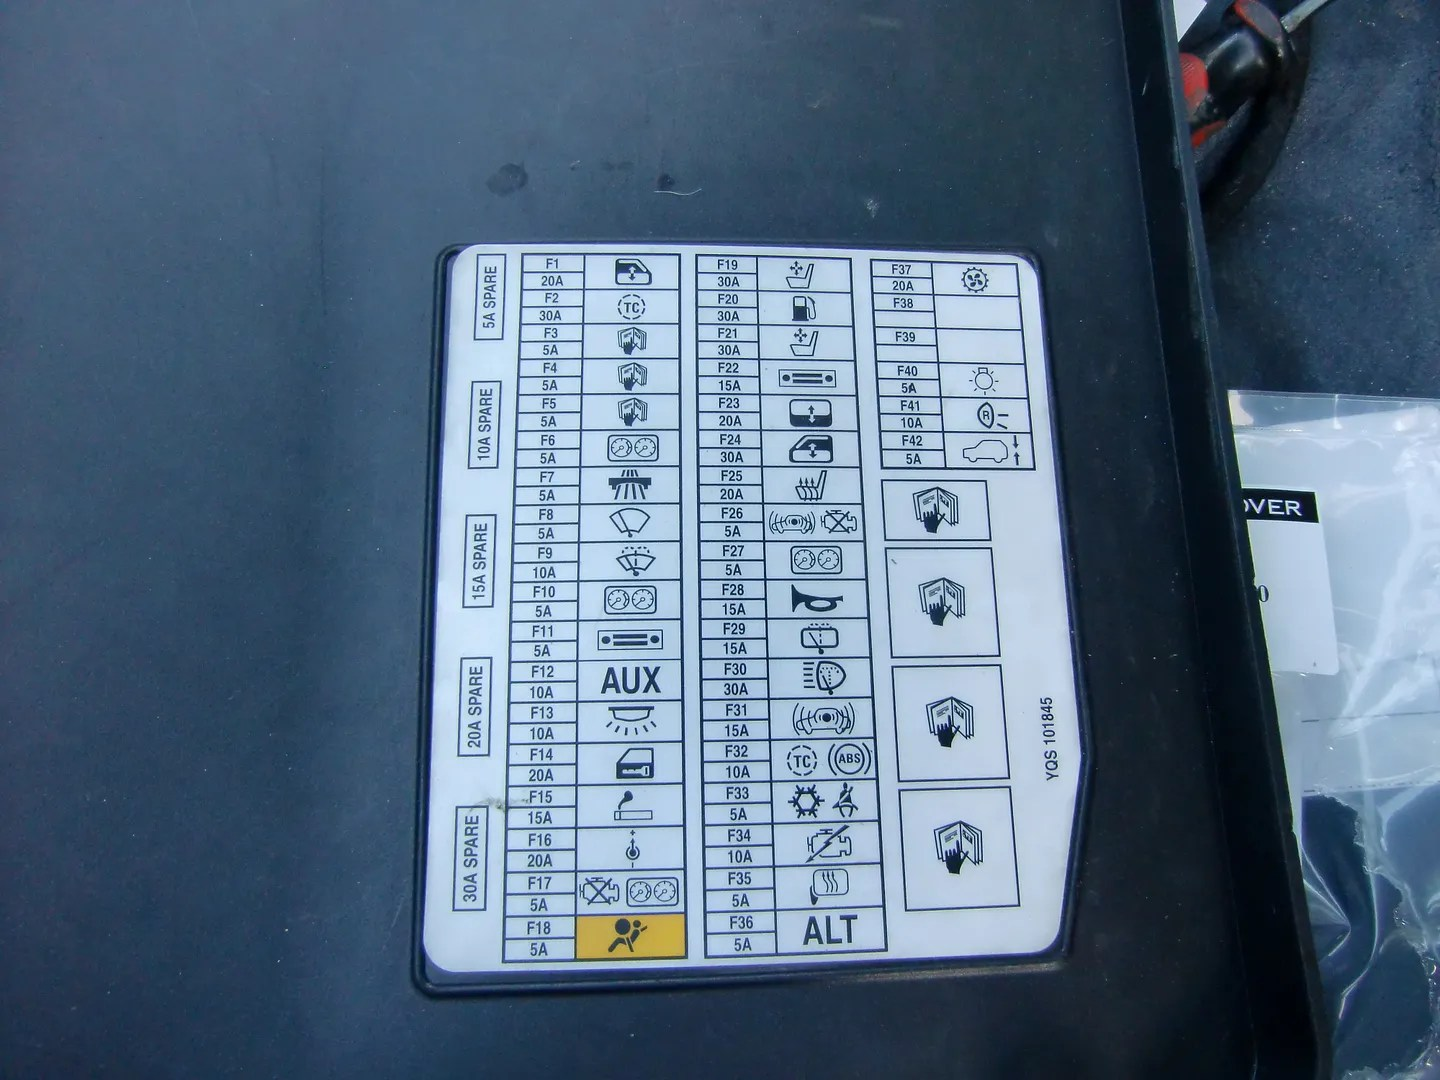 hight resolution of fuse box on rover 75 wiring diagram operations fuse box rover 75 located